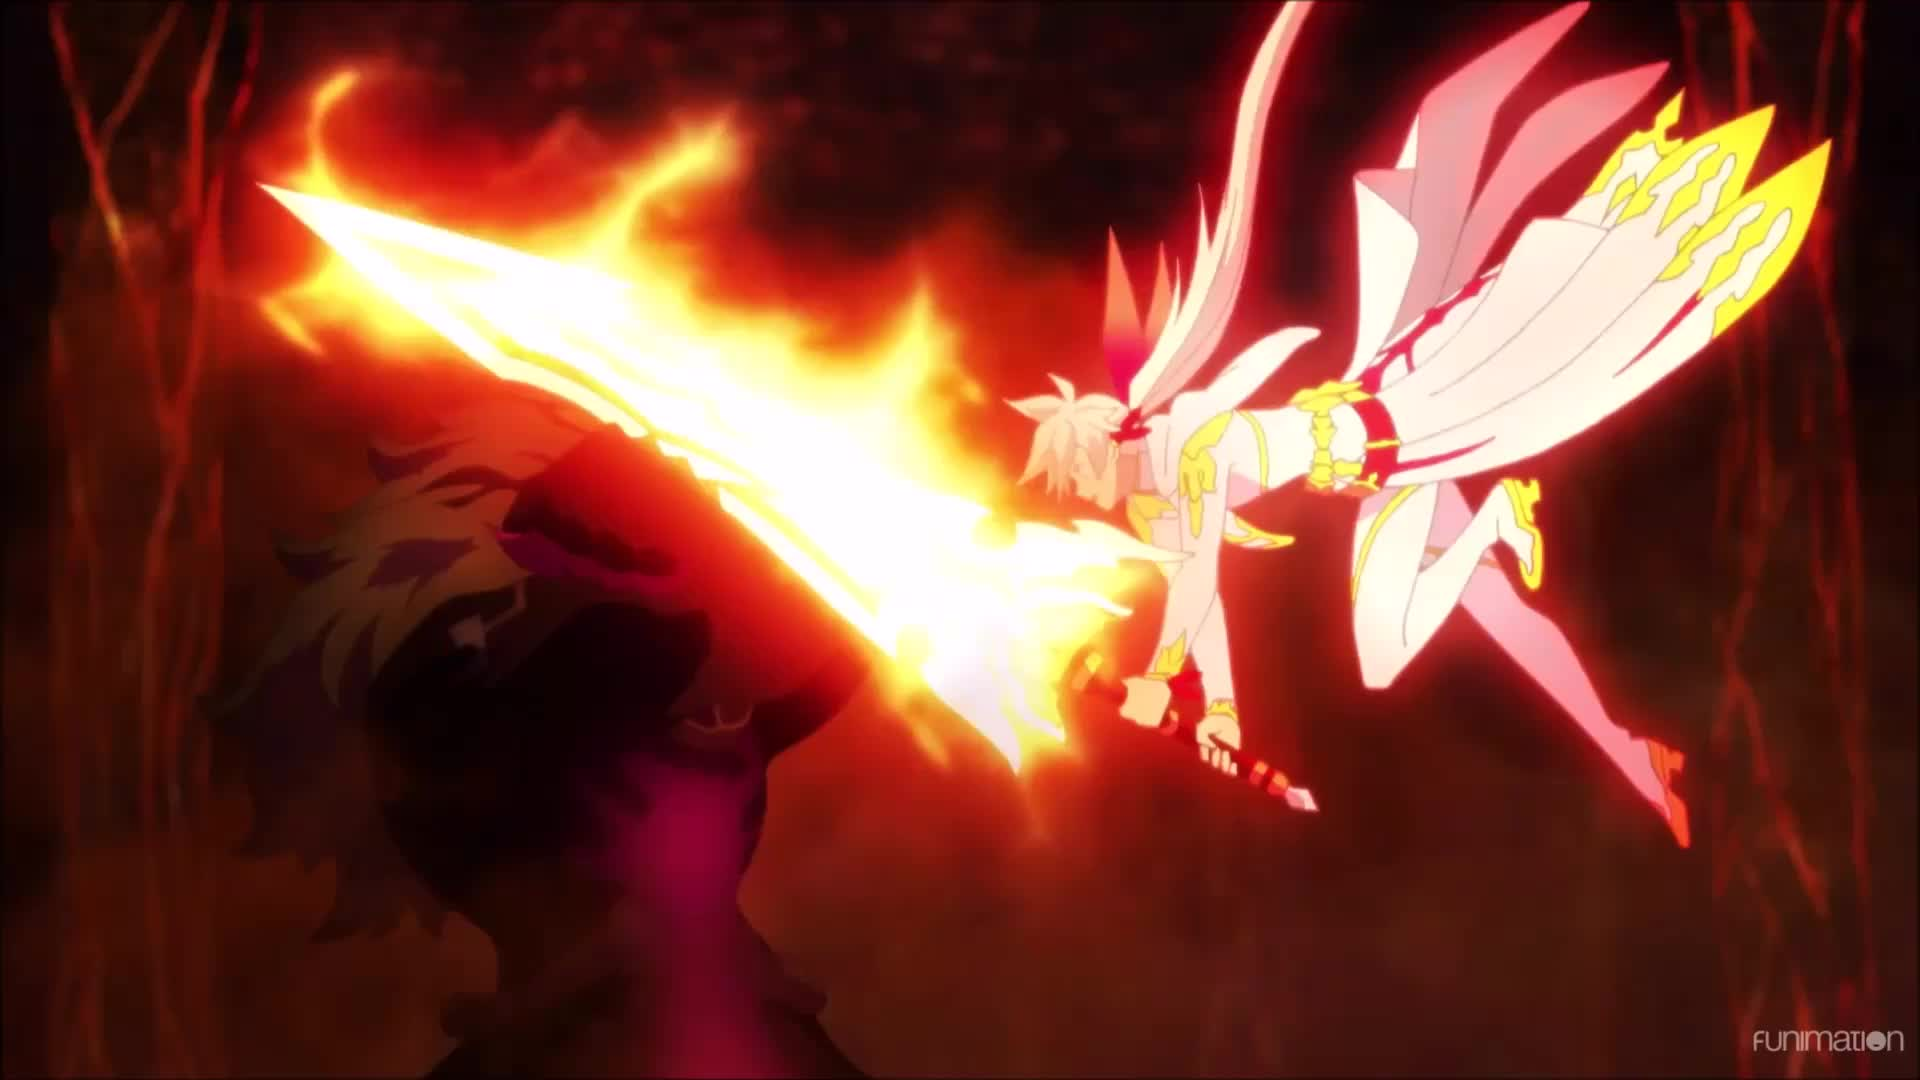 anime, fantasy, funimation, tales of zestiria the x, tales of zestiria the x episode 24, talesofzestiriathex, talesofzestiriathexepisode24, ufotable, Heldalf pushes Soreliah off of him. Tales of Zestiria the X Ep 24 GIFs